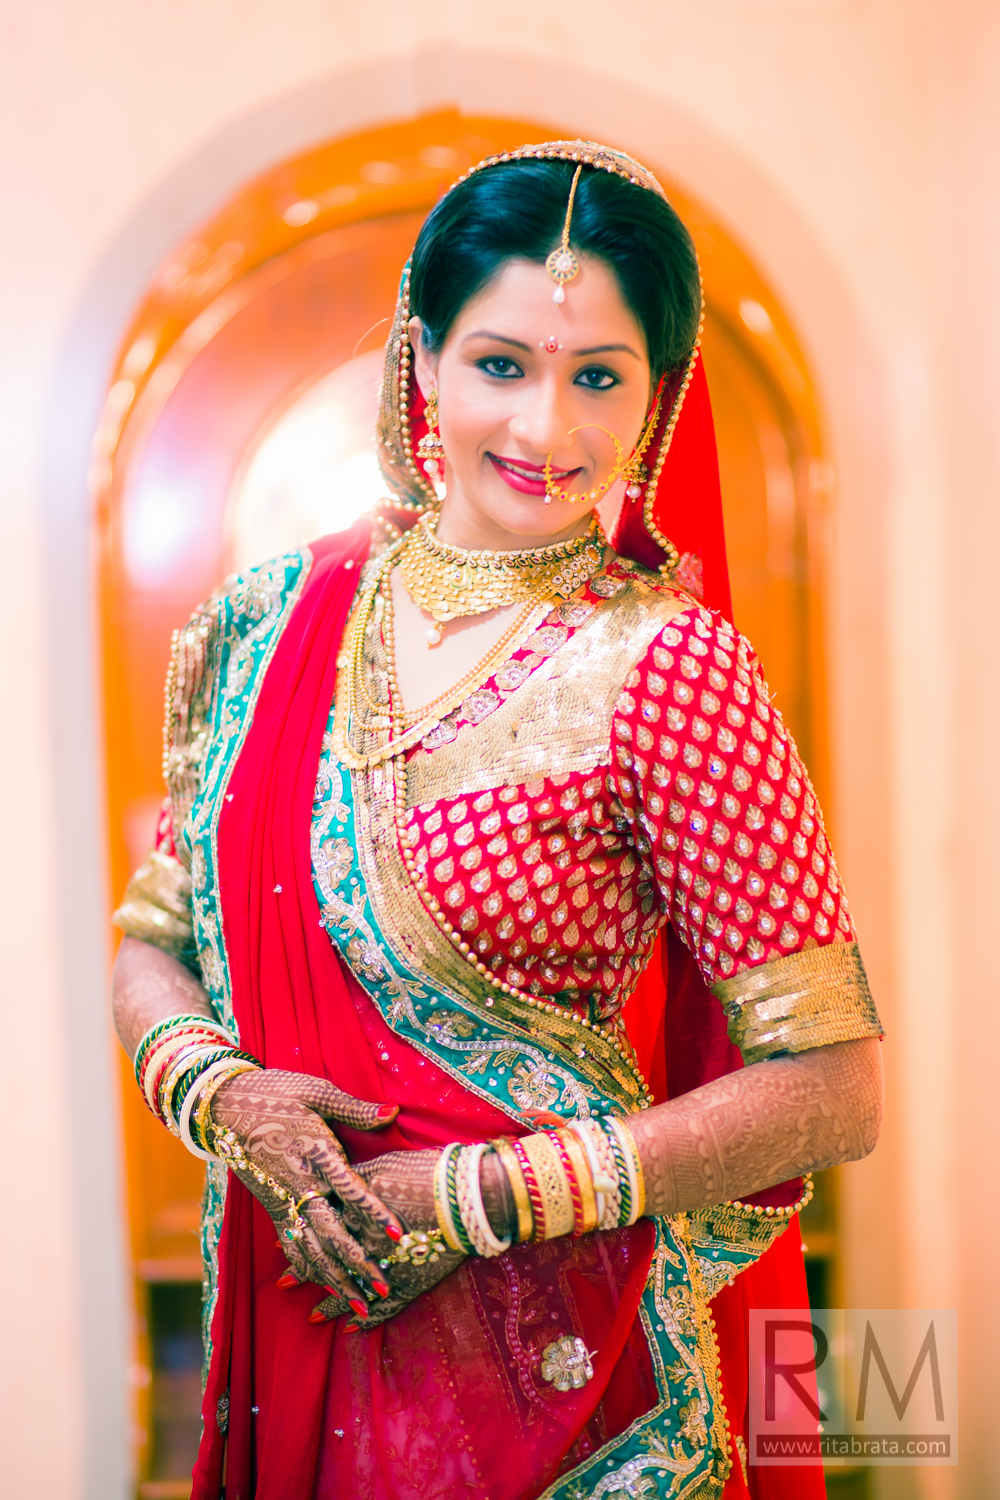 fine-art-wedding-photography-kolkata-ami-rahul-9